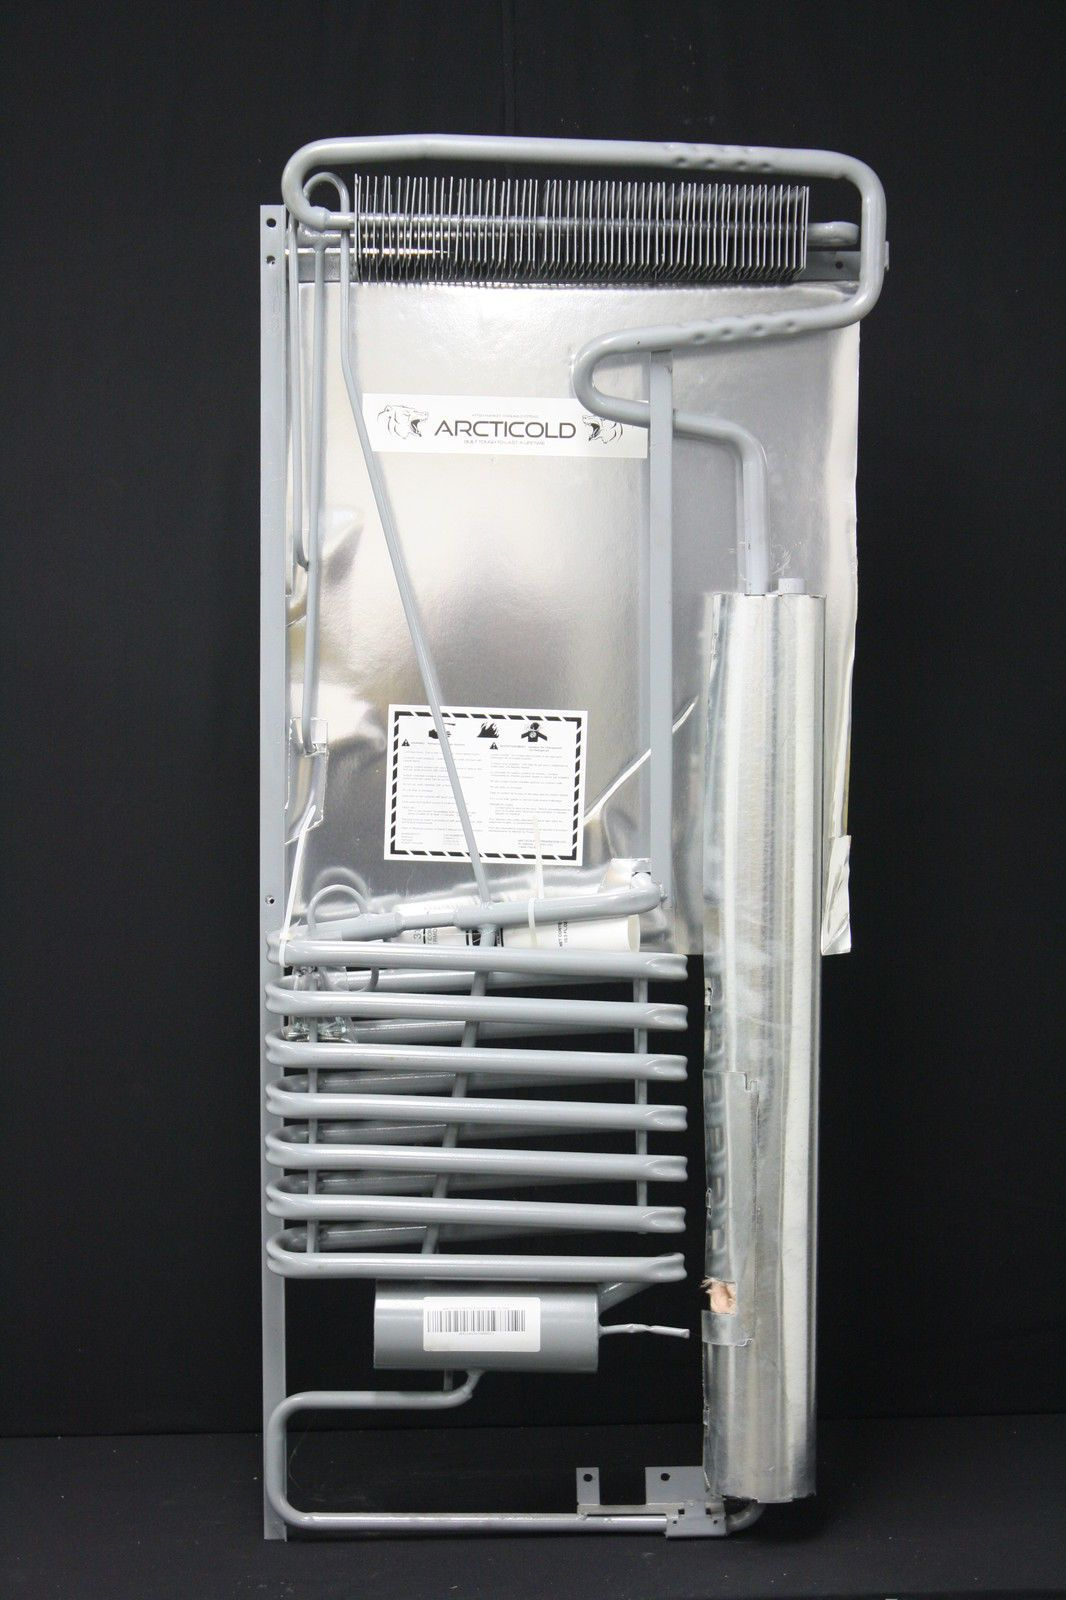 Arcticold New Lifetime Warranty Aftermarket Cooling Unit For